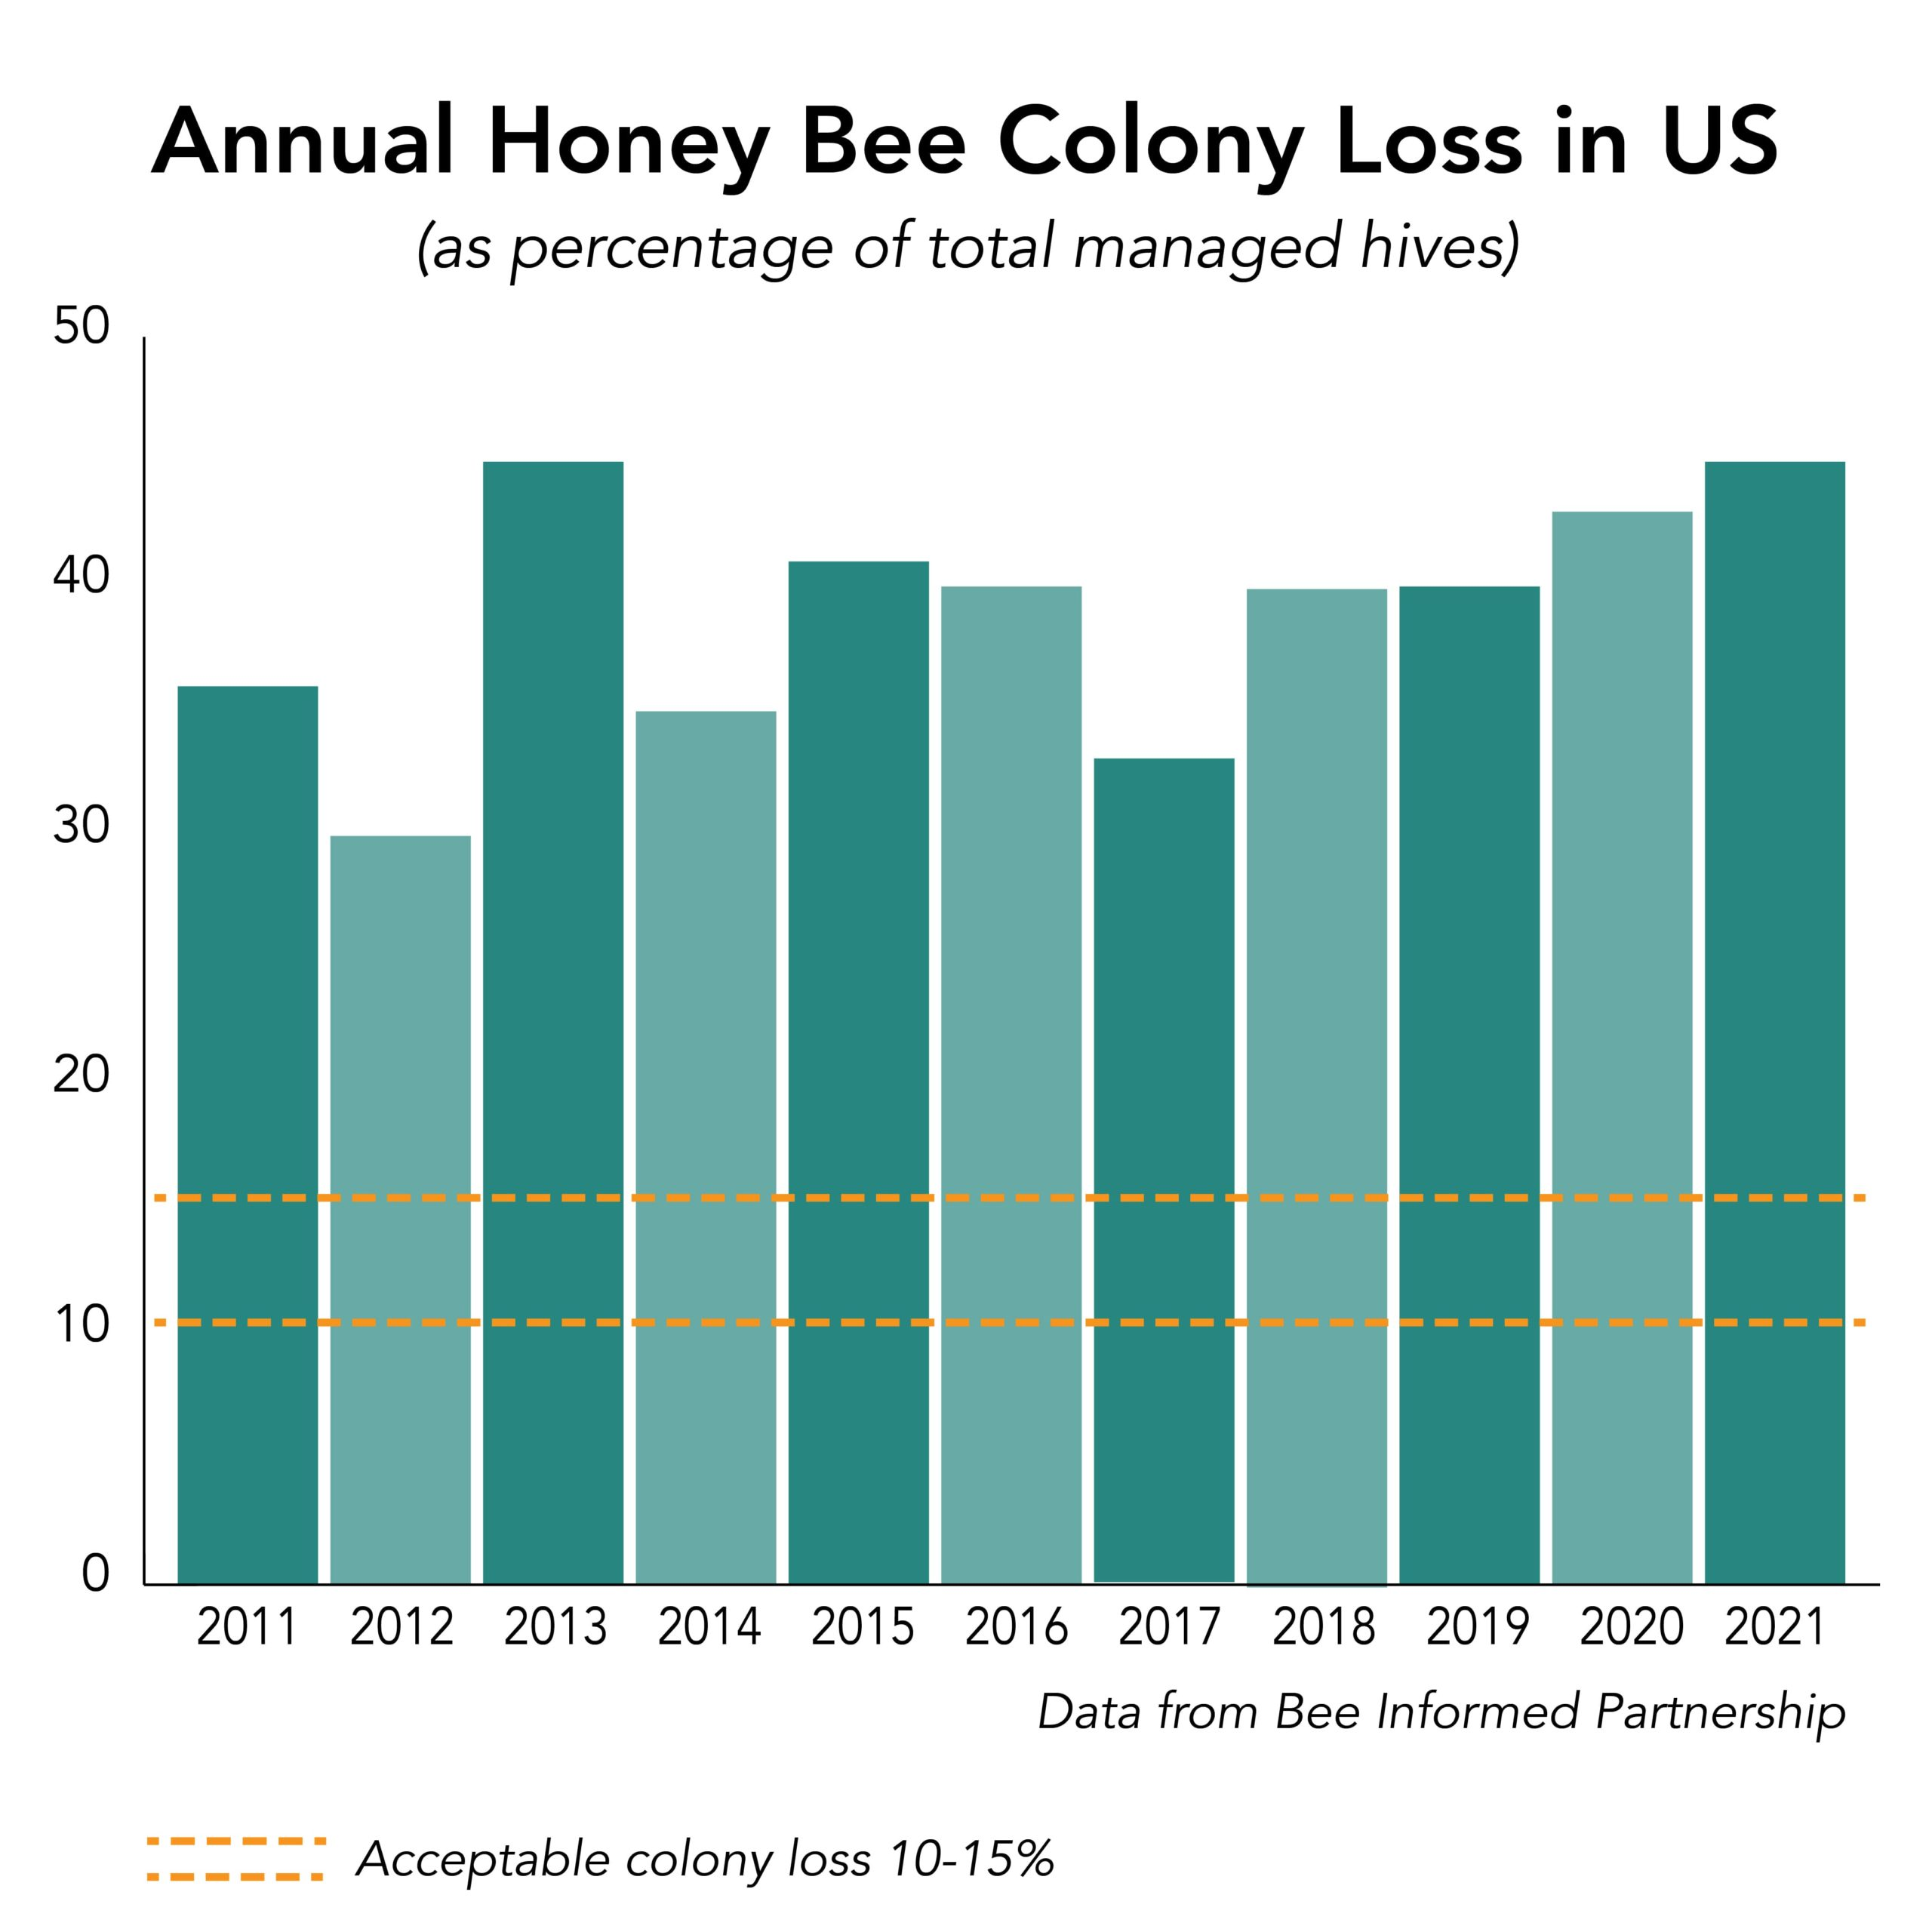 https://www.savethebee.org/wp-content/uploads/2021/09/Bee-Colony-Loss-resized-for-web-scaled.jpg